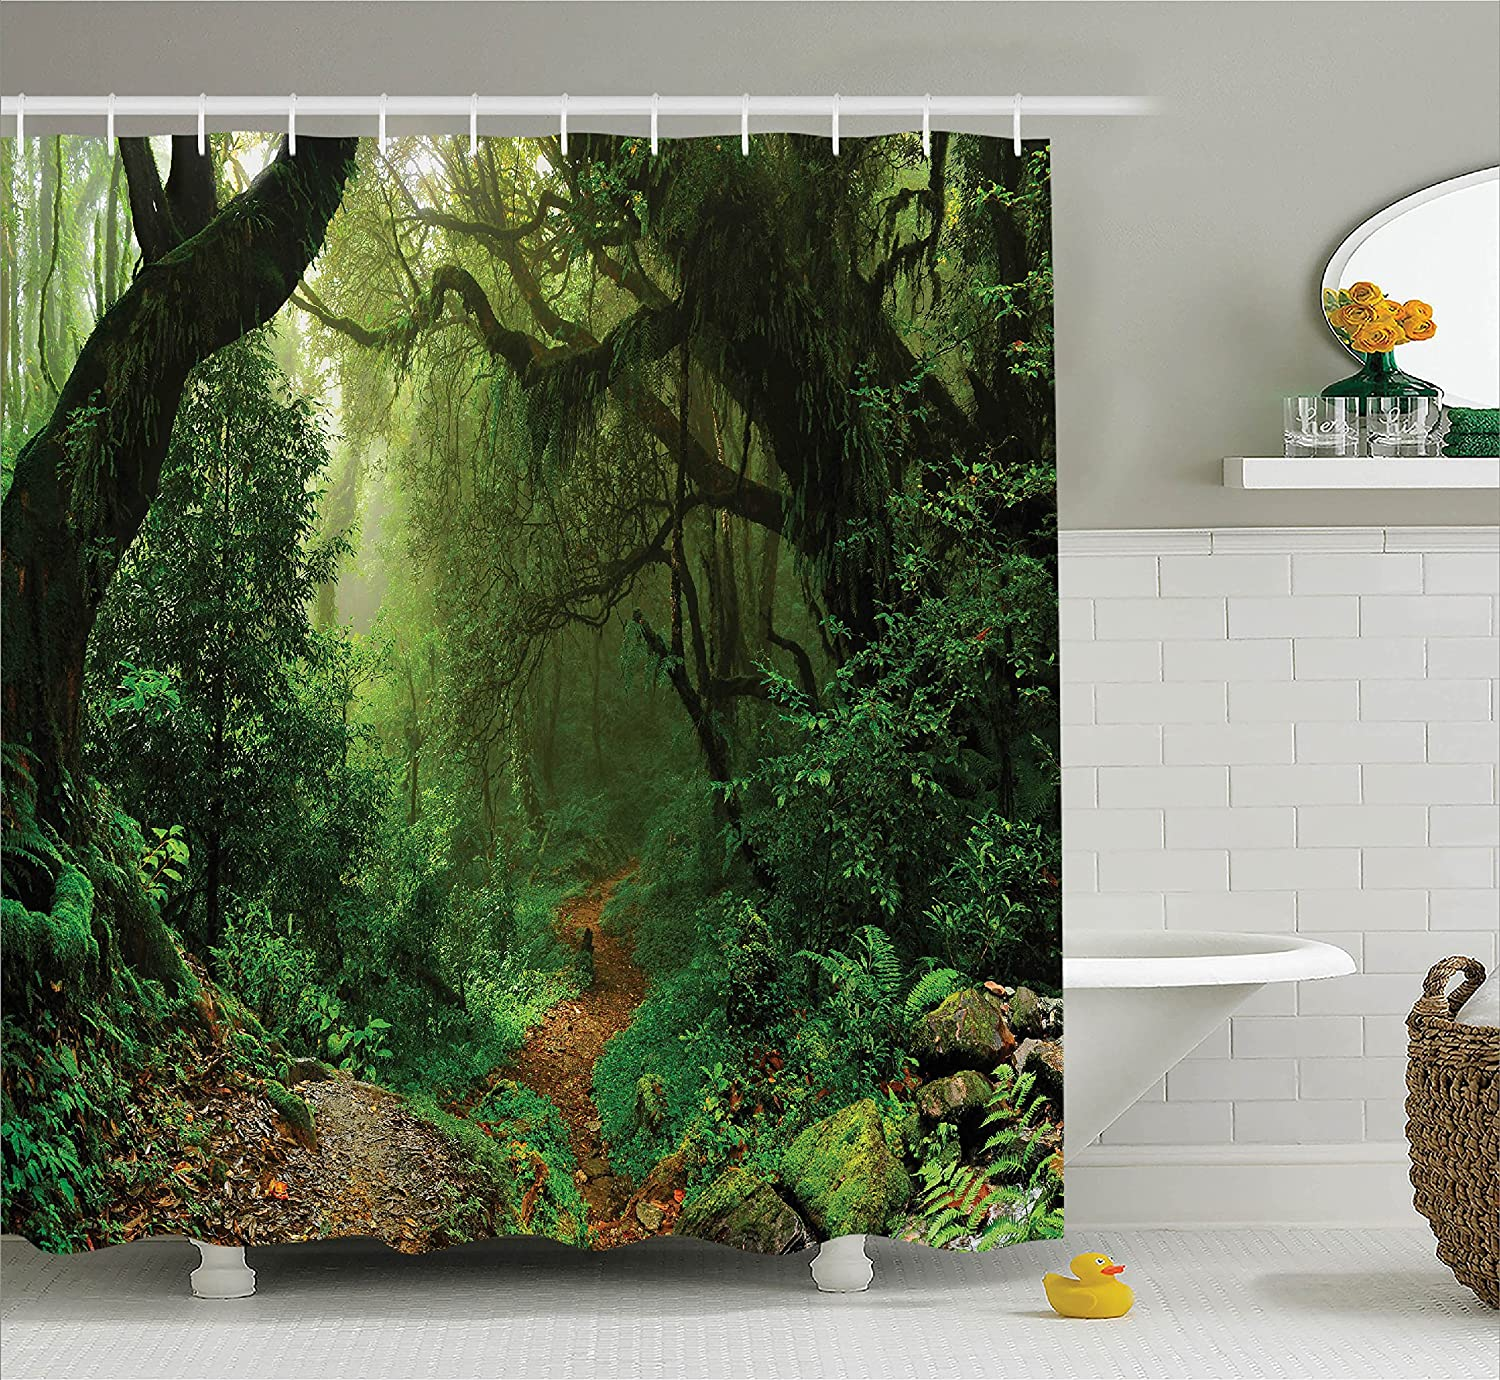 Amazoncom Ambesonne Rainforest Decorations Shower Curtain Set, Forest In Nepal